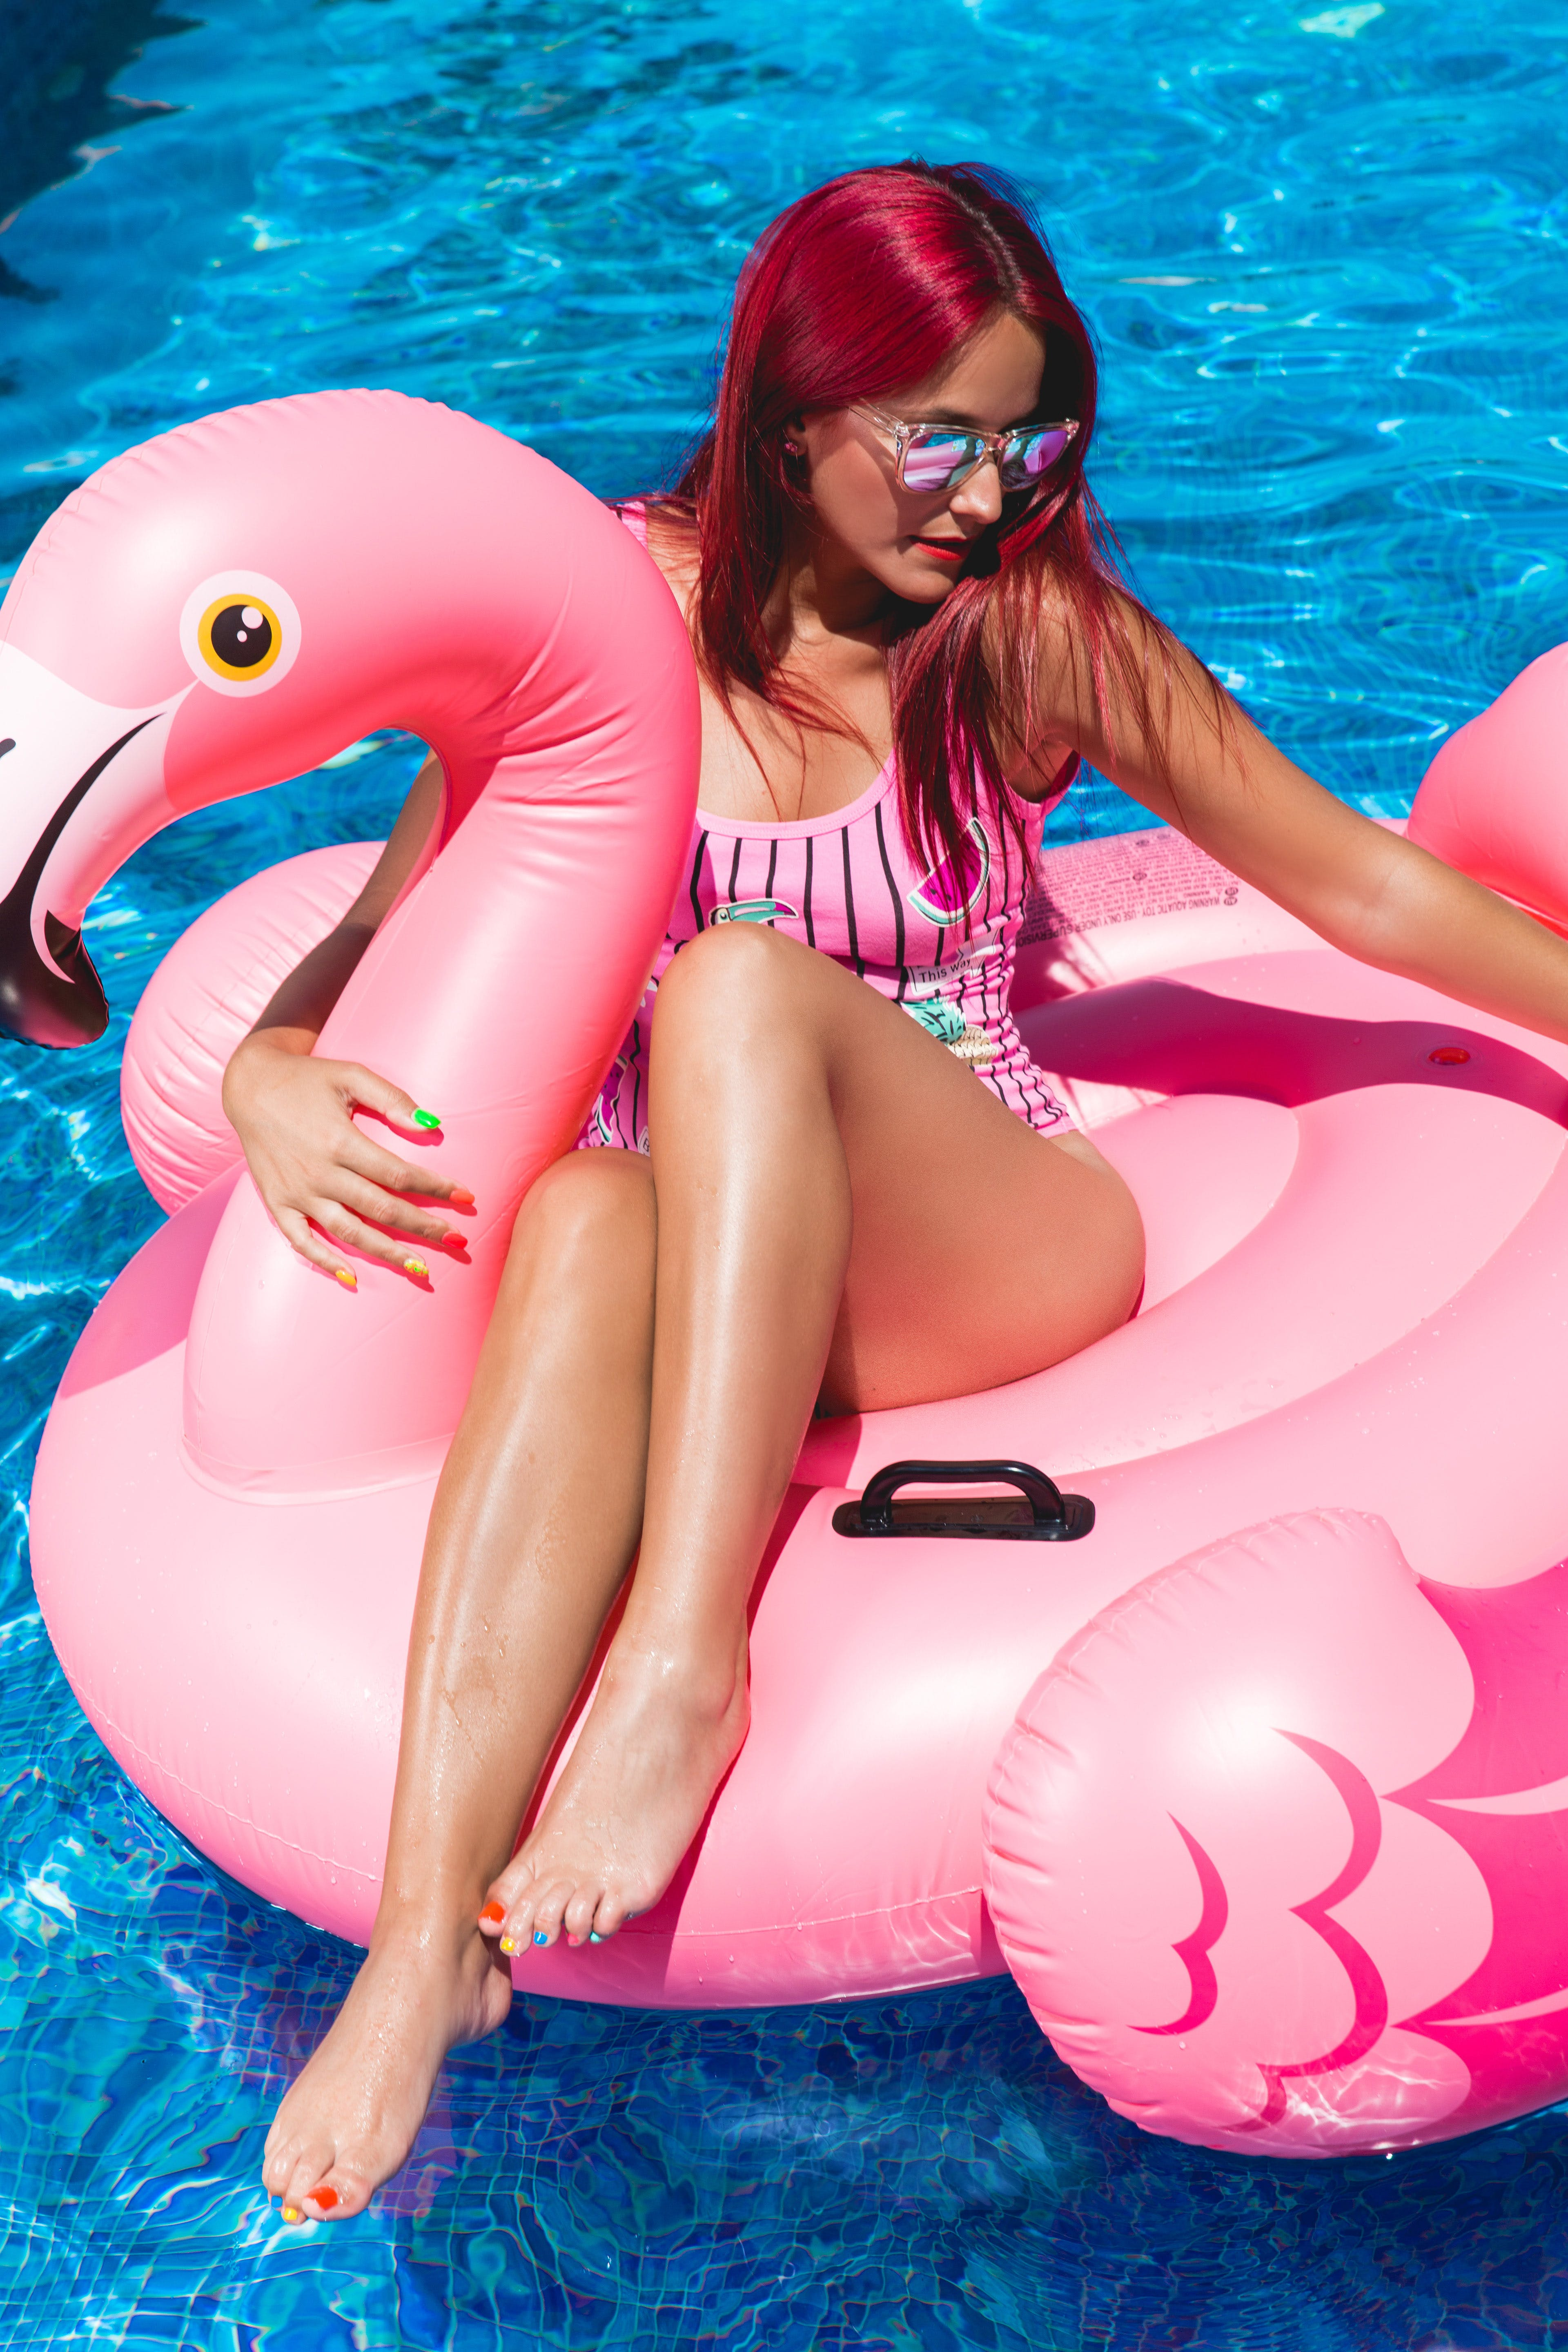 Woman Sitting on Flamingo Inflatable Floater